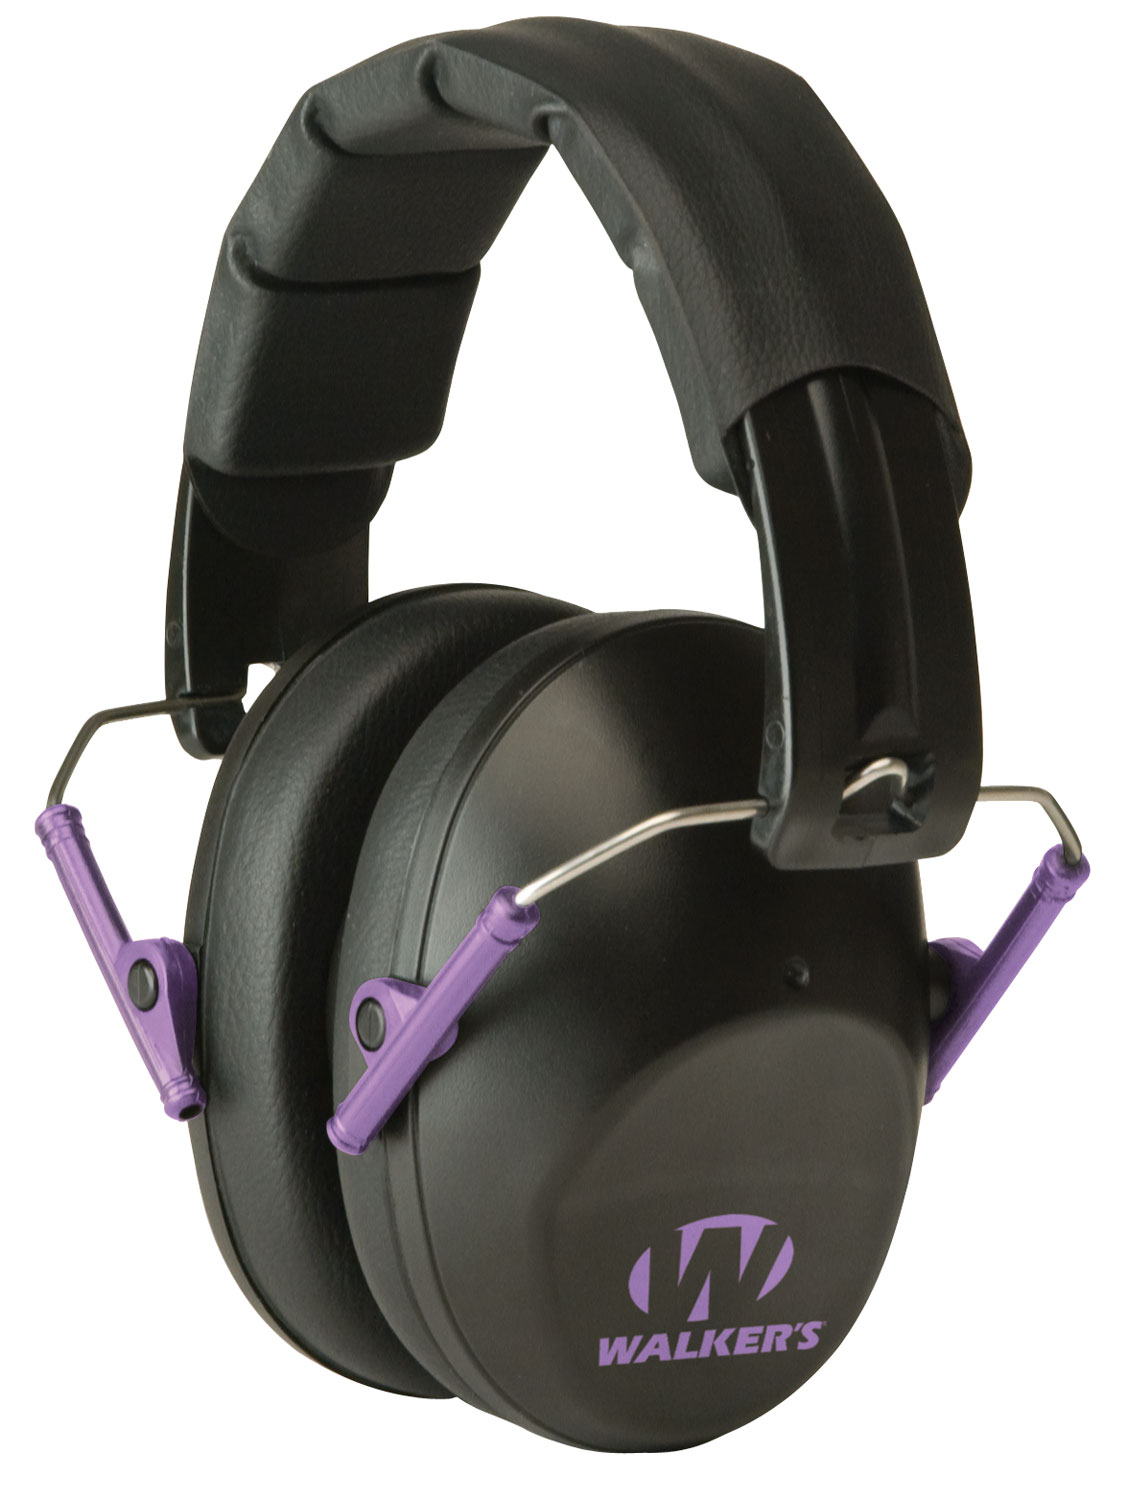 Walkers GWPFPM1BKPU Pro Low Profile Folding Muff Earmuff 22 dB Black/Purple